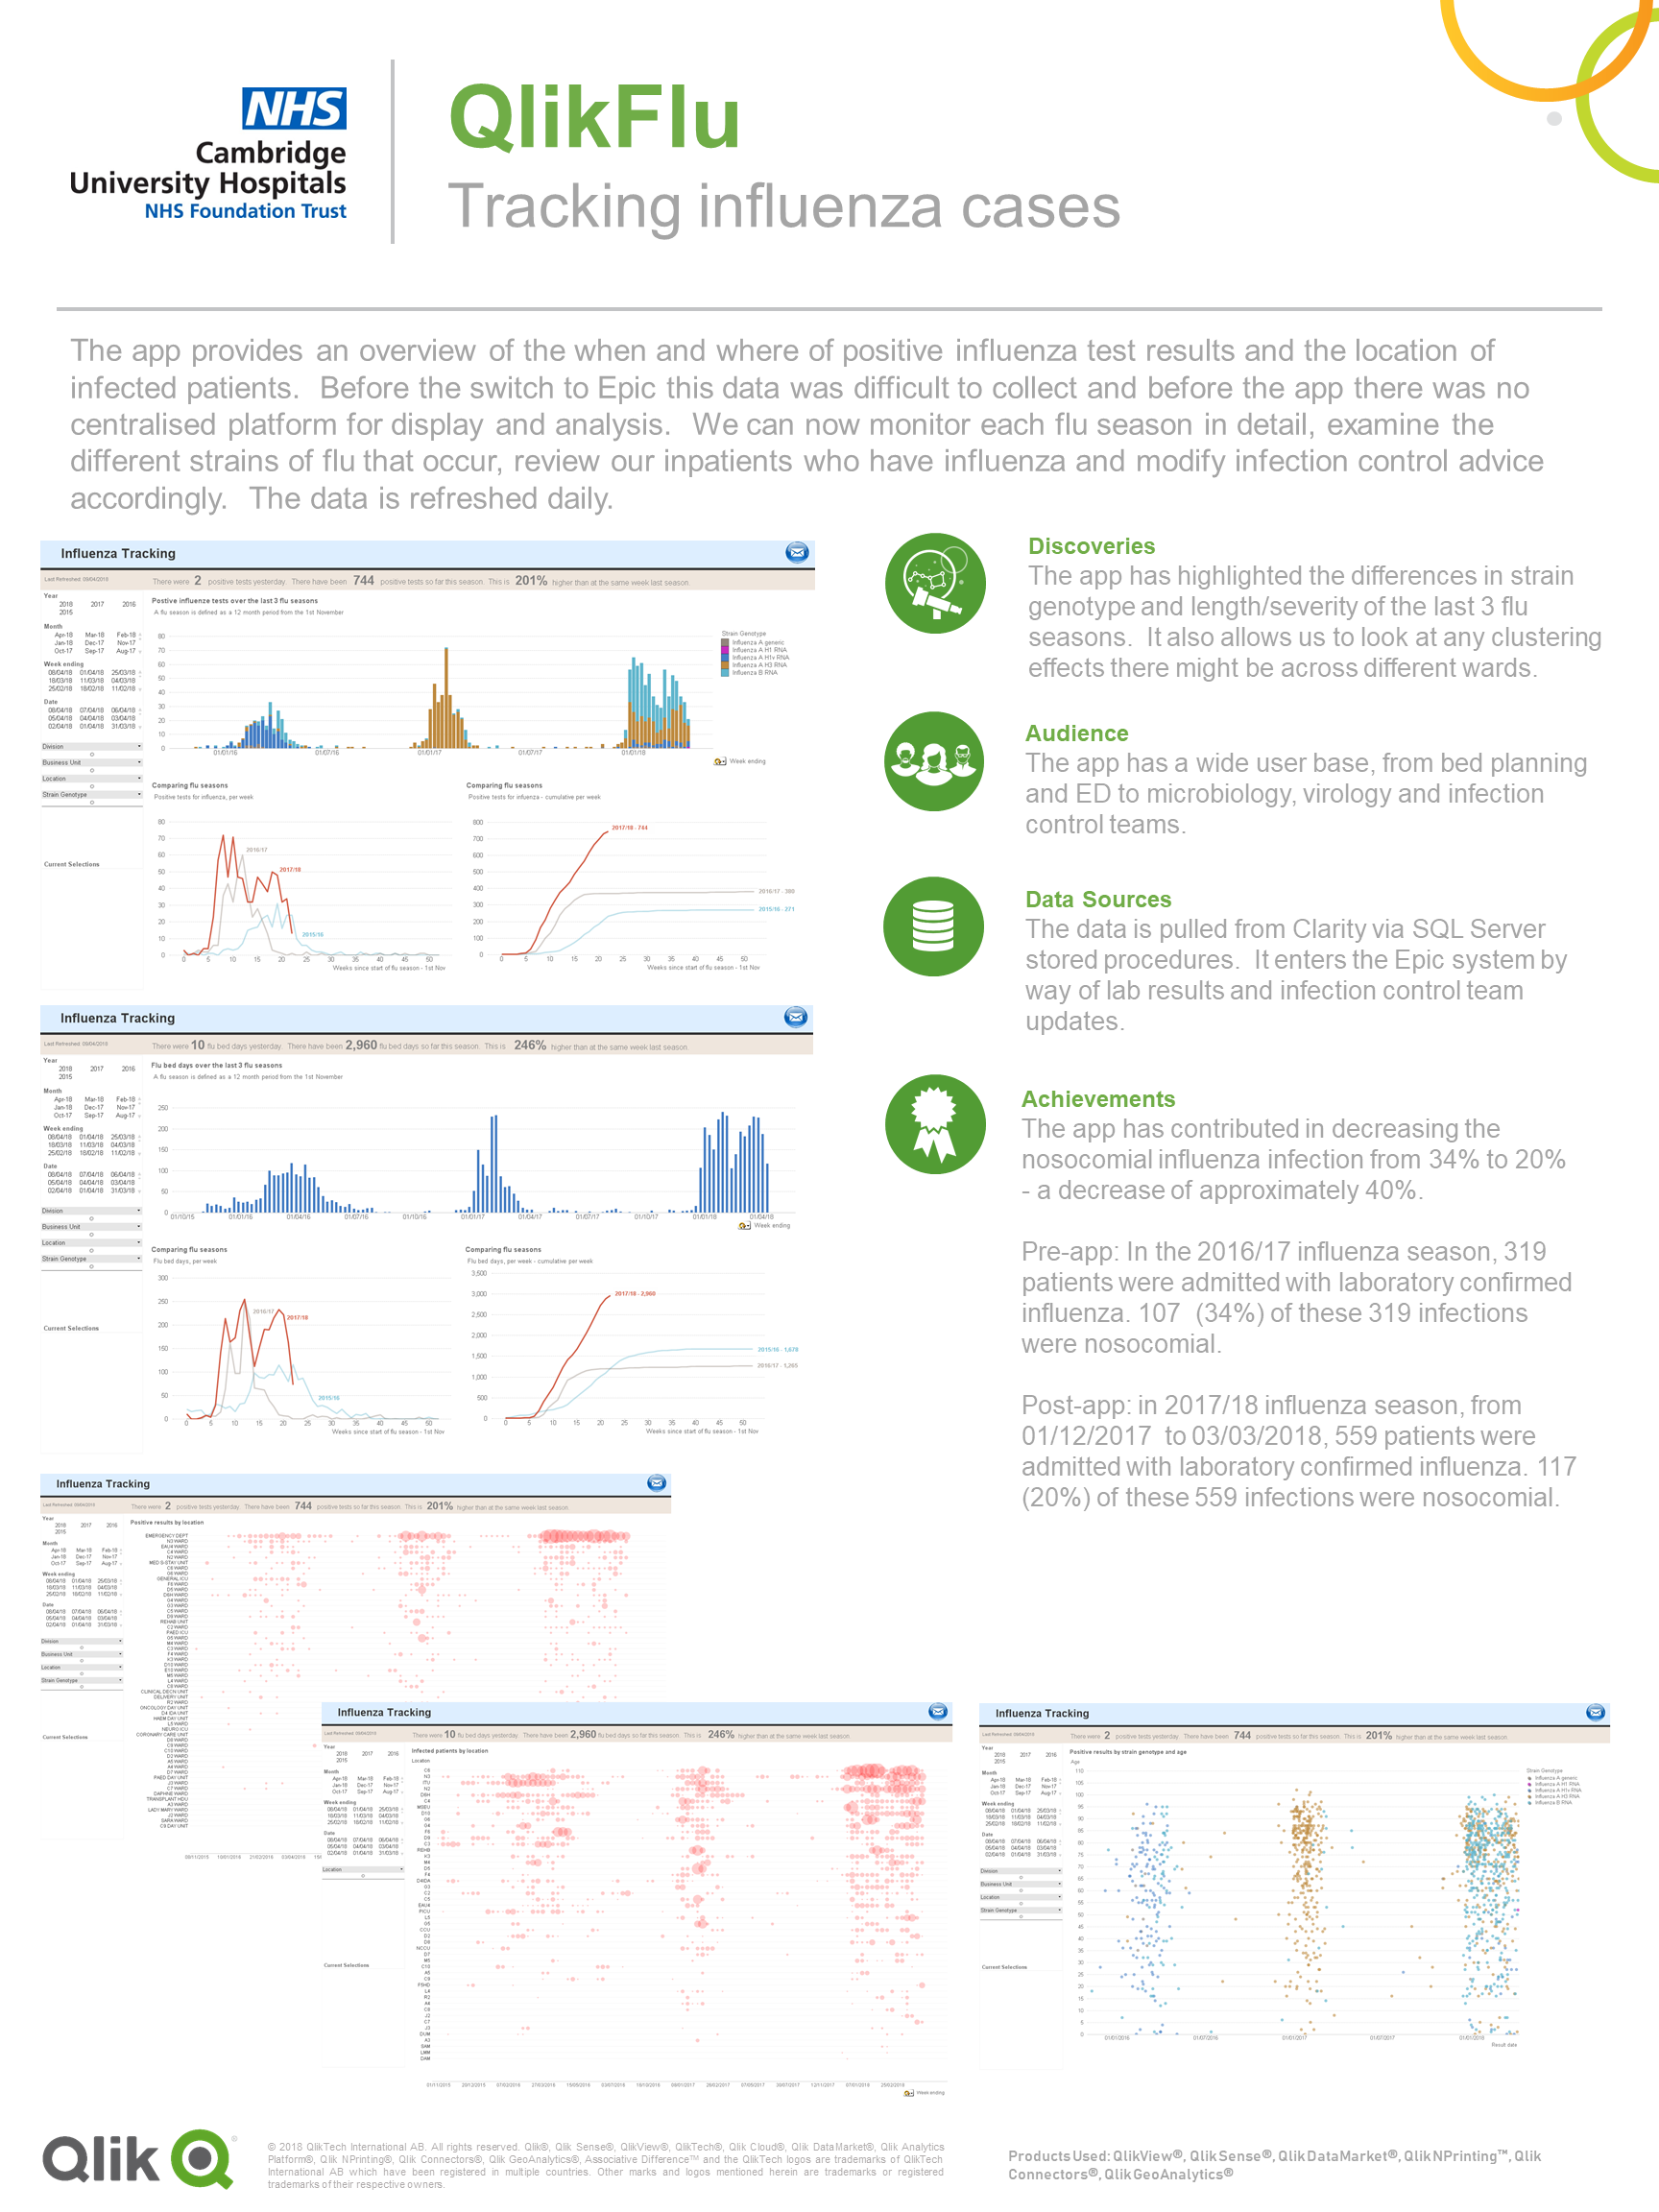 3 Qonnections Healthcare Poster - Cambridge University Hospitals NHS Foundaton Trust - QlikFlu.png